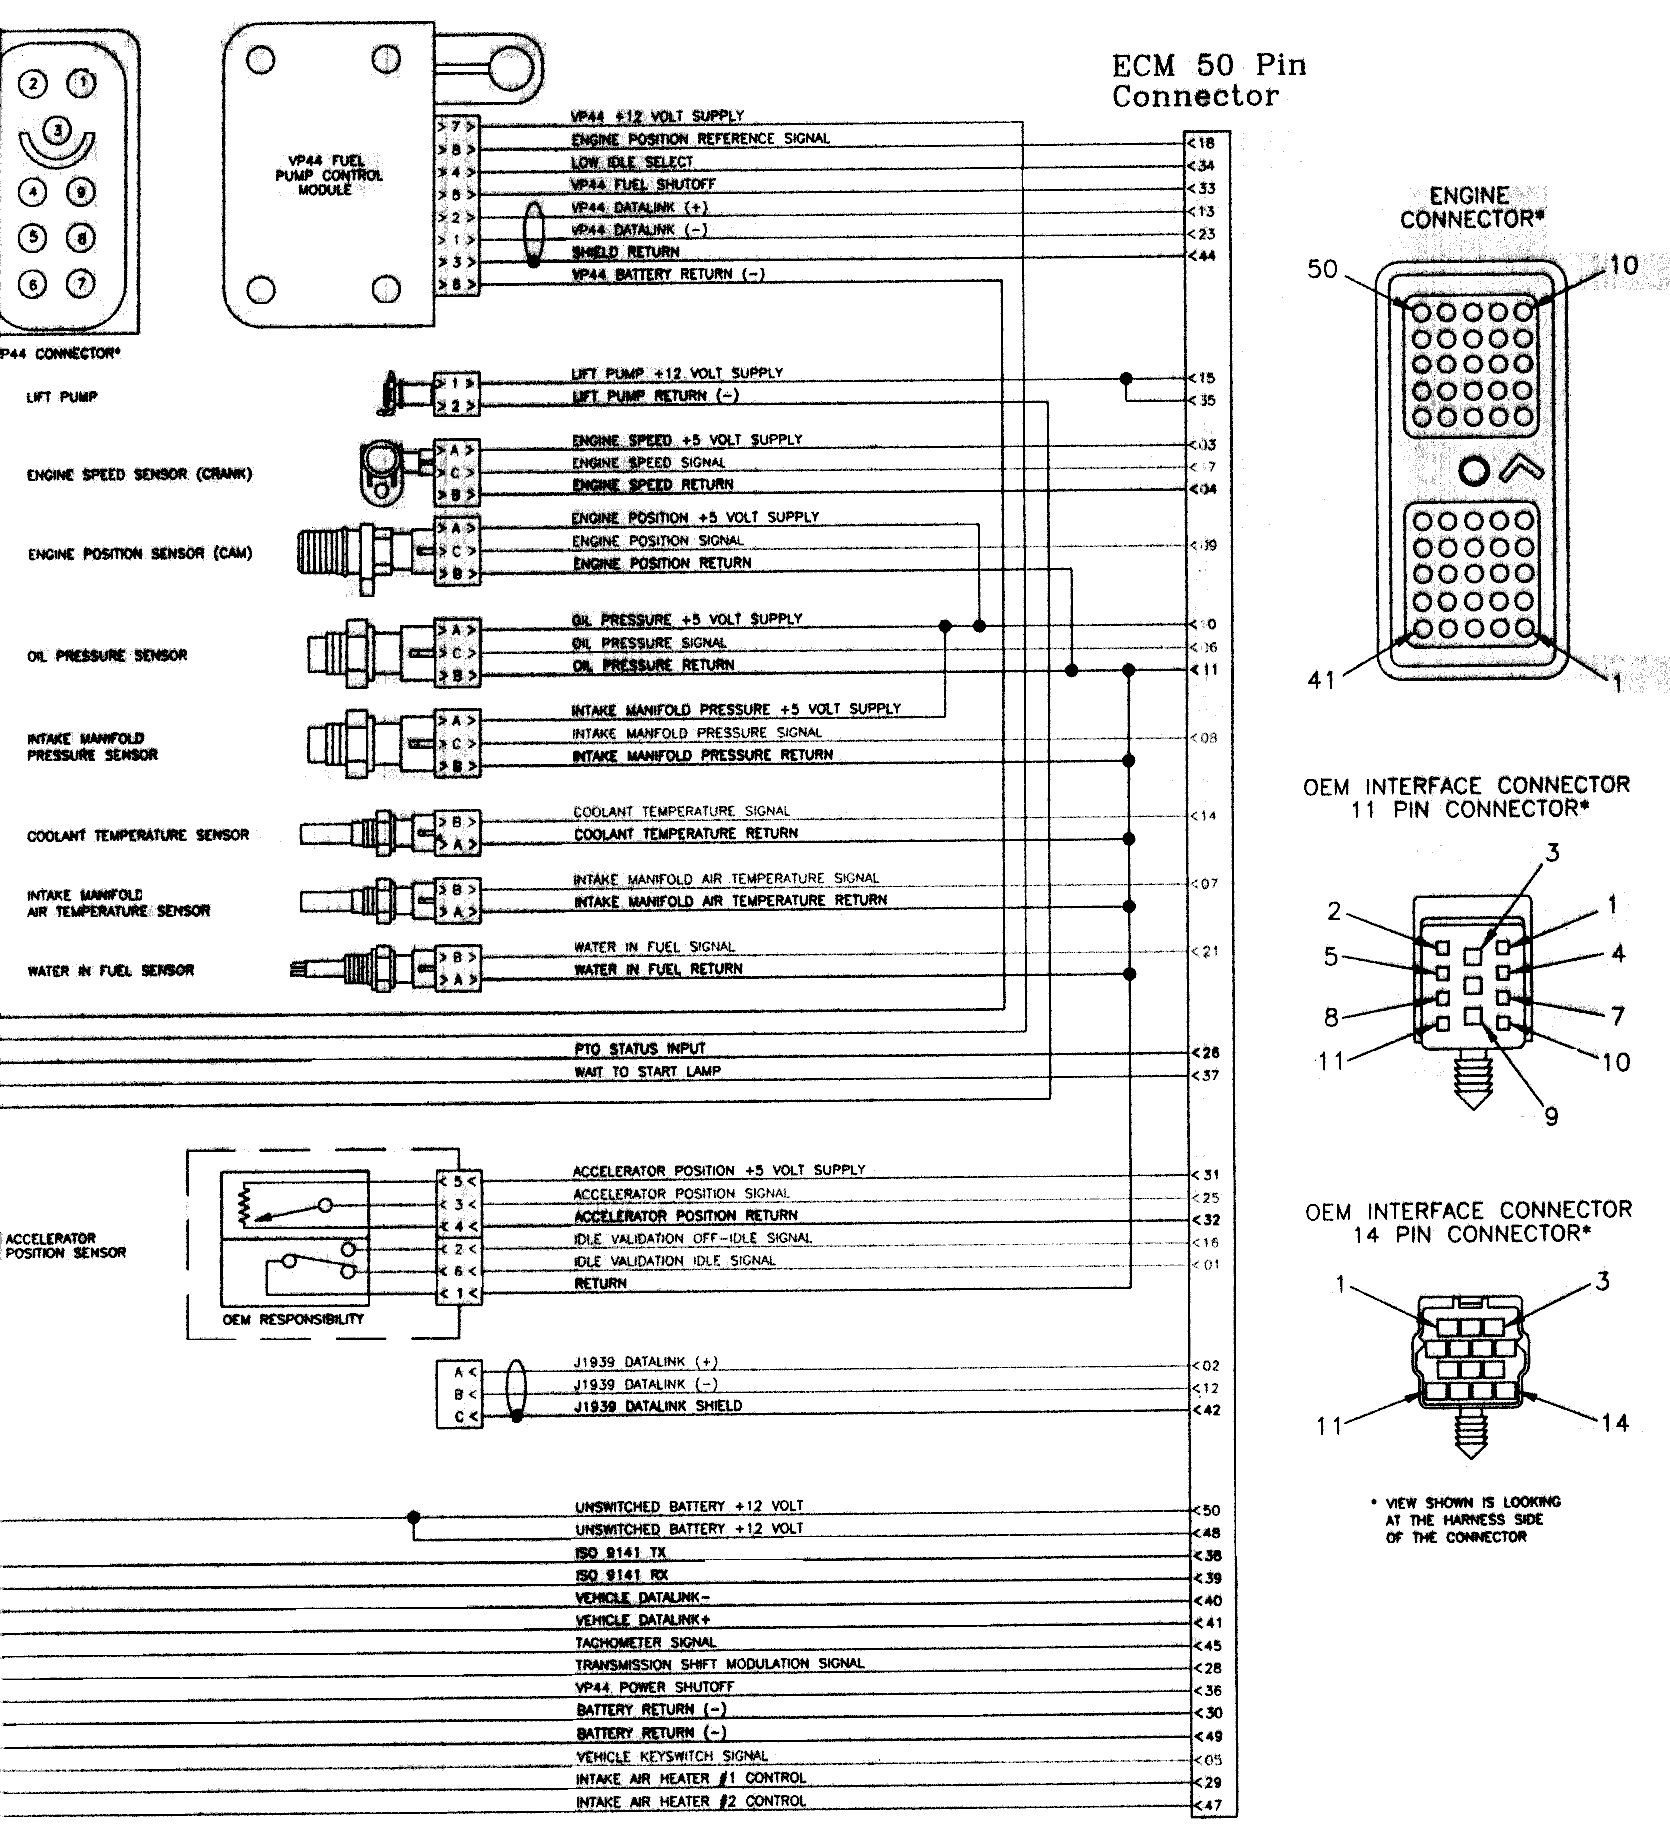 2002 dodge dakota pcm wiring diagram - wiring diagram dodge dakota manual  best 2002 dodge dakota